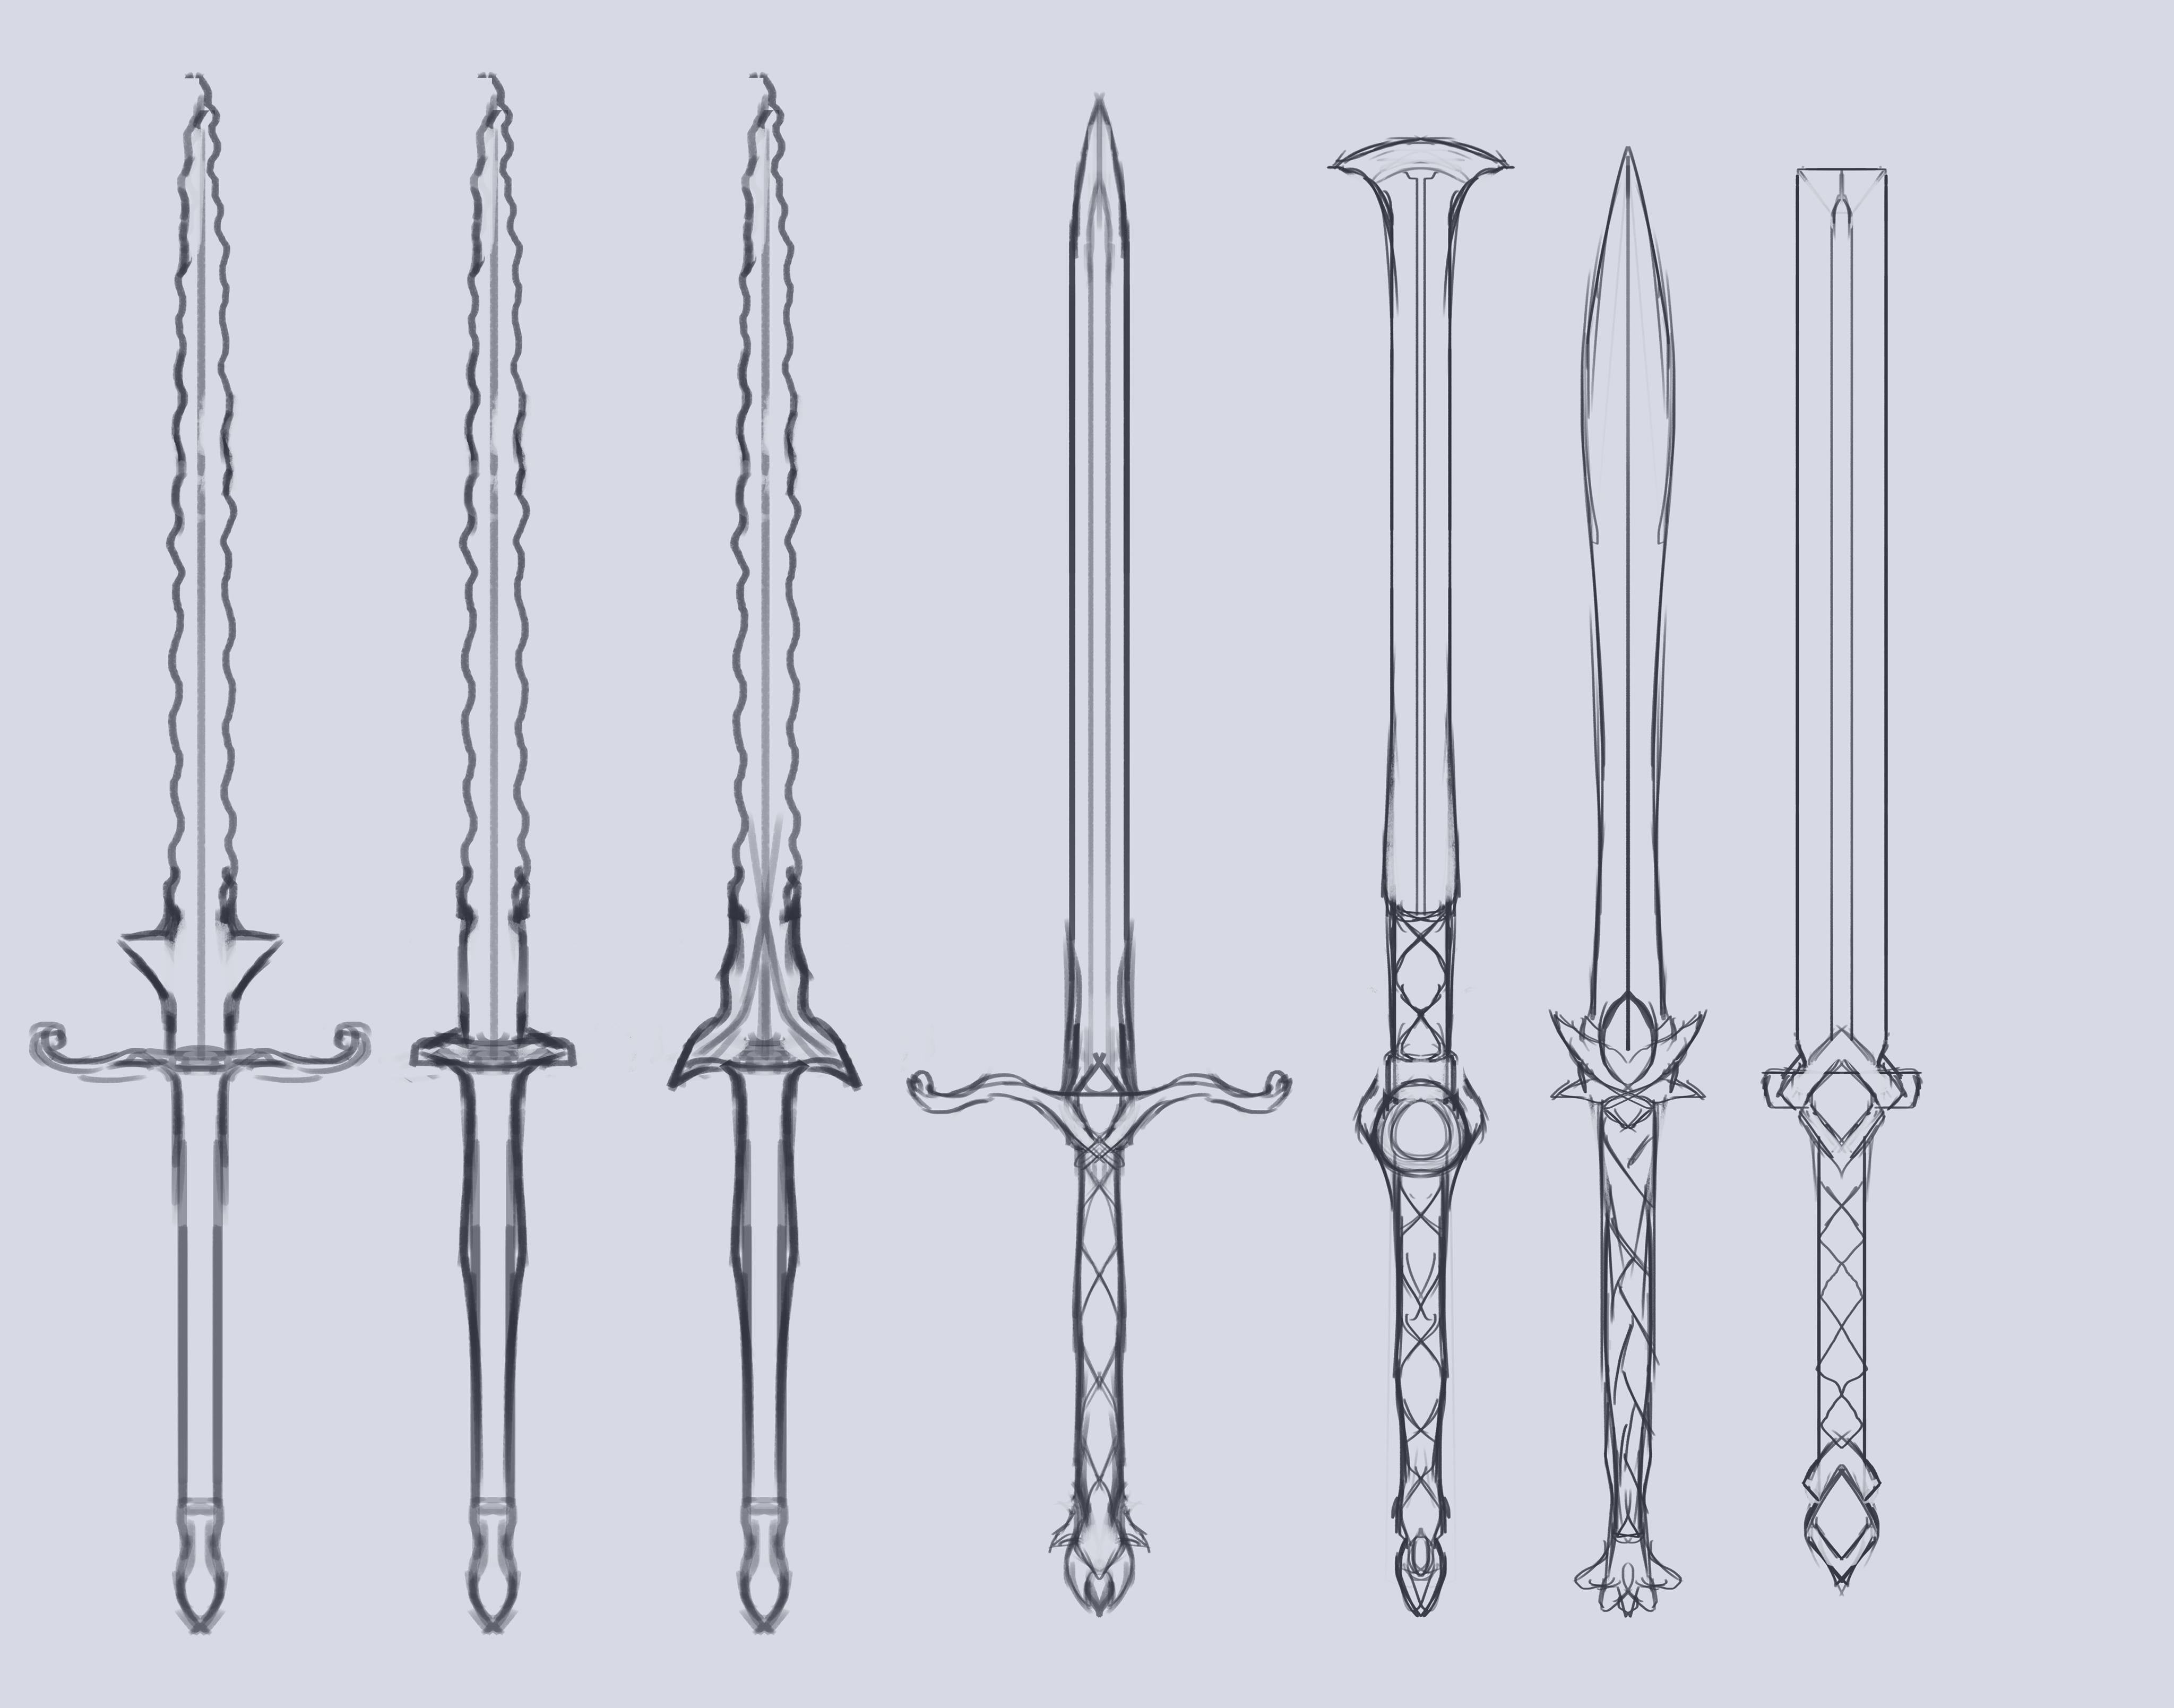 sketches of swords